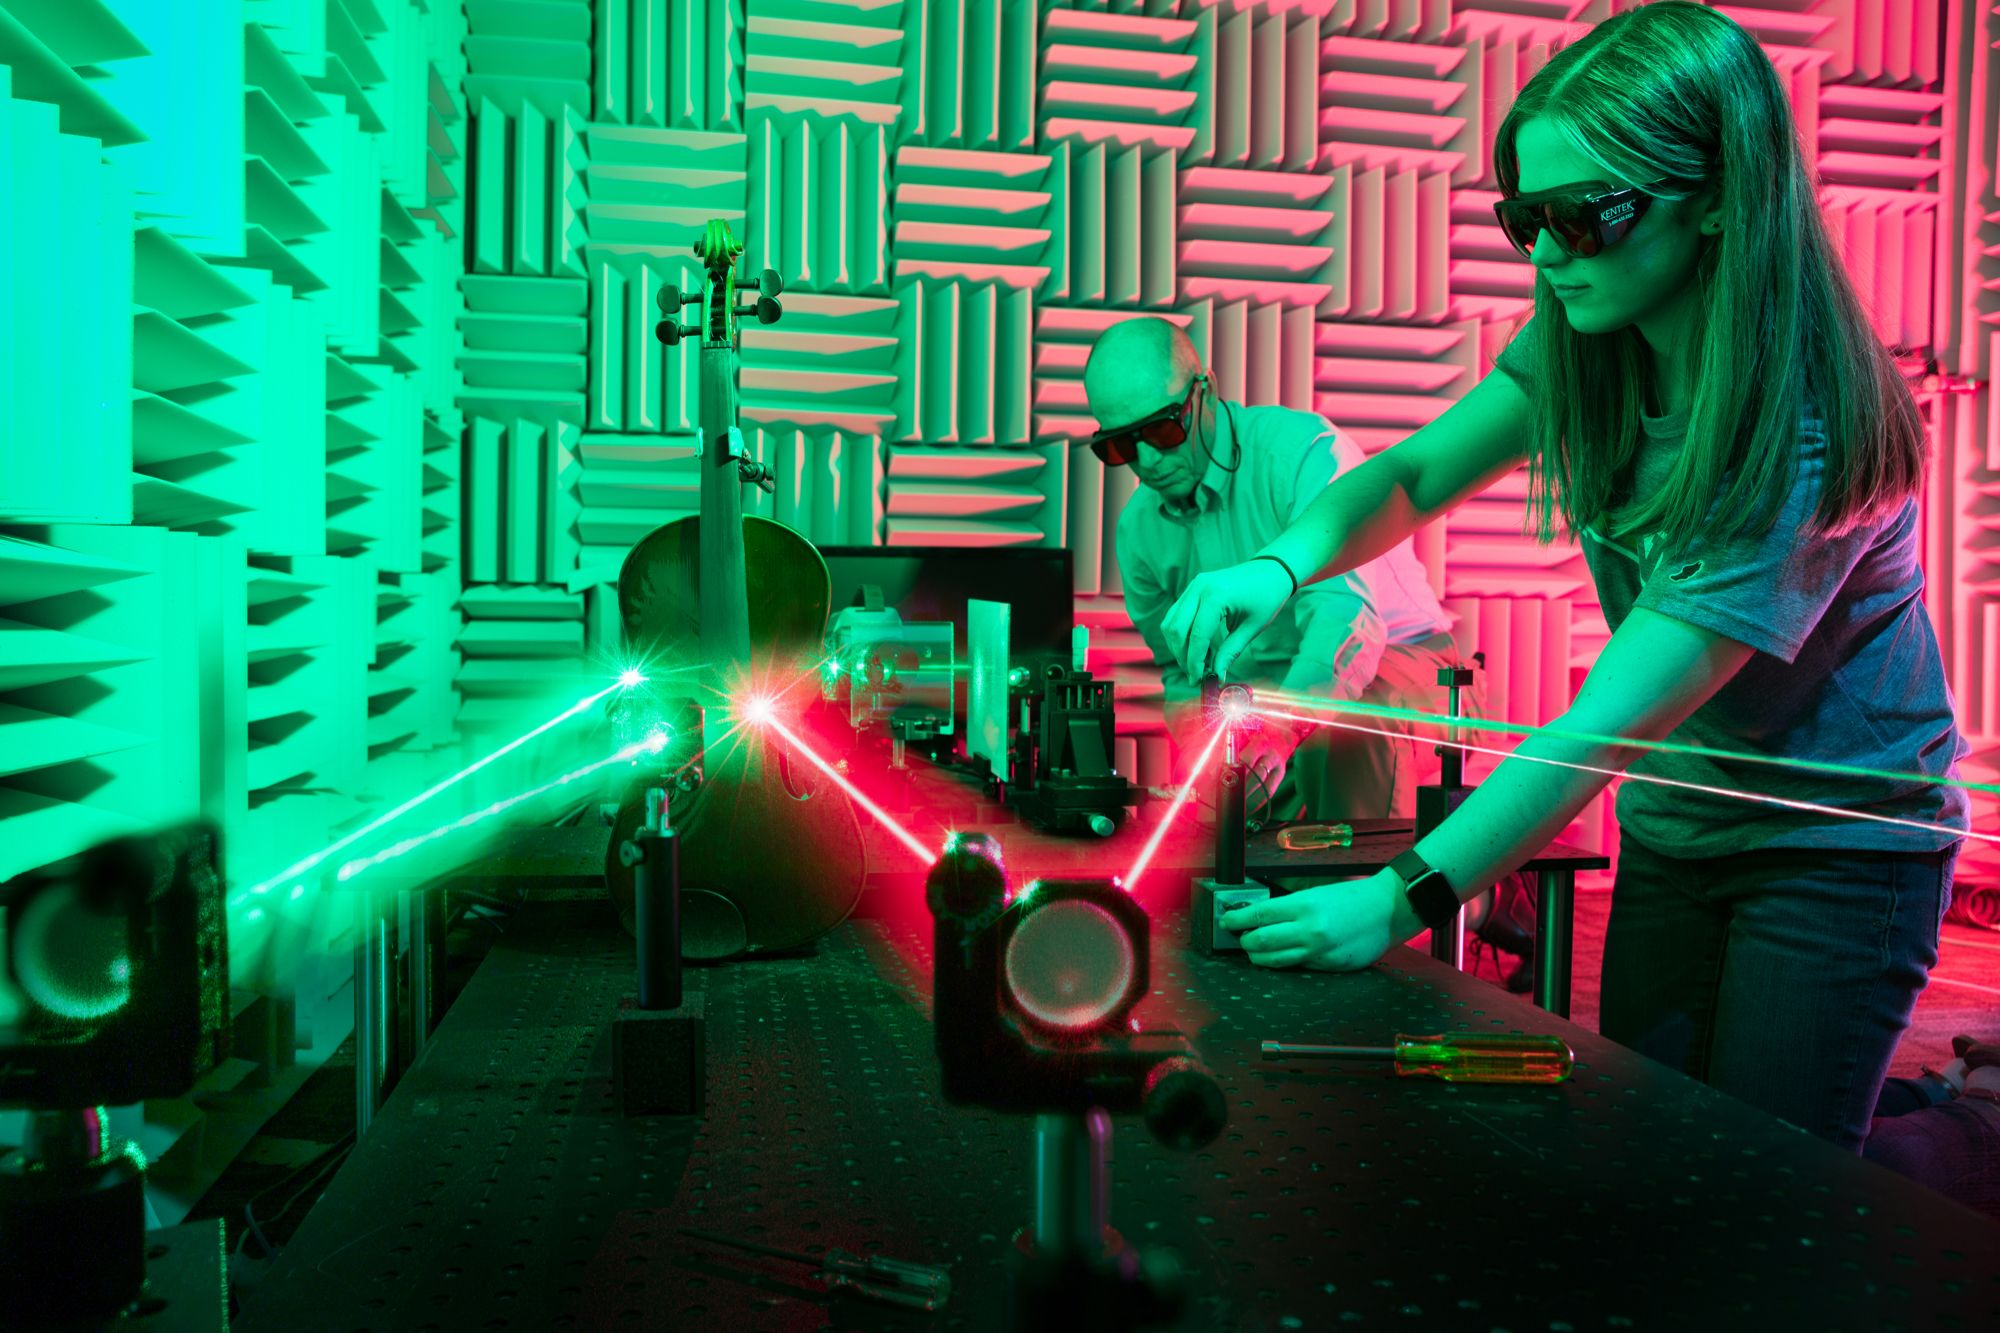 Lauren Neldner and physics professor Thom Moore conduct acoustics research in Rollins' anechoic chamber.